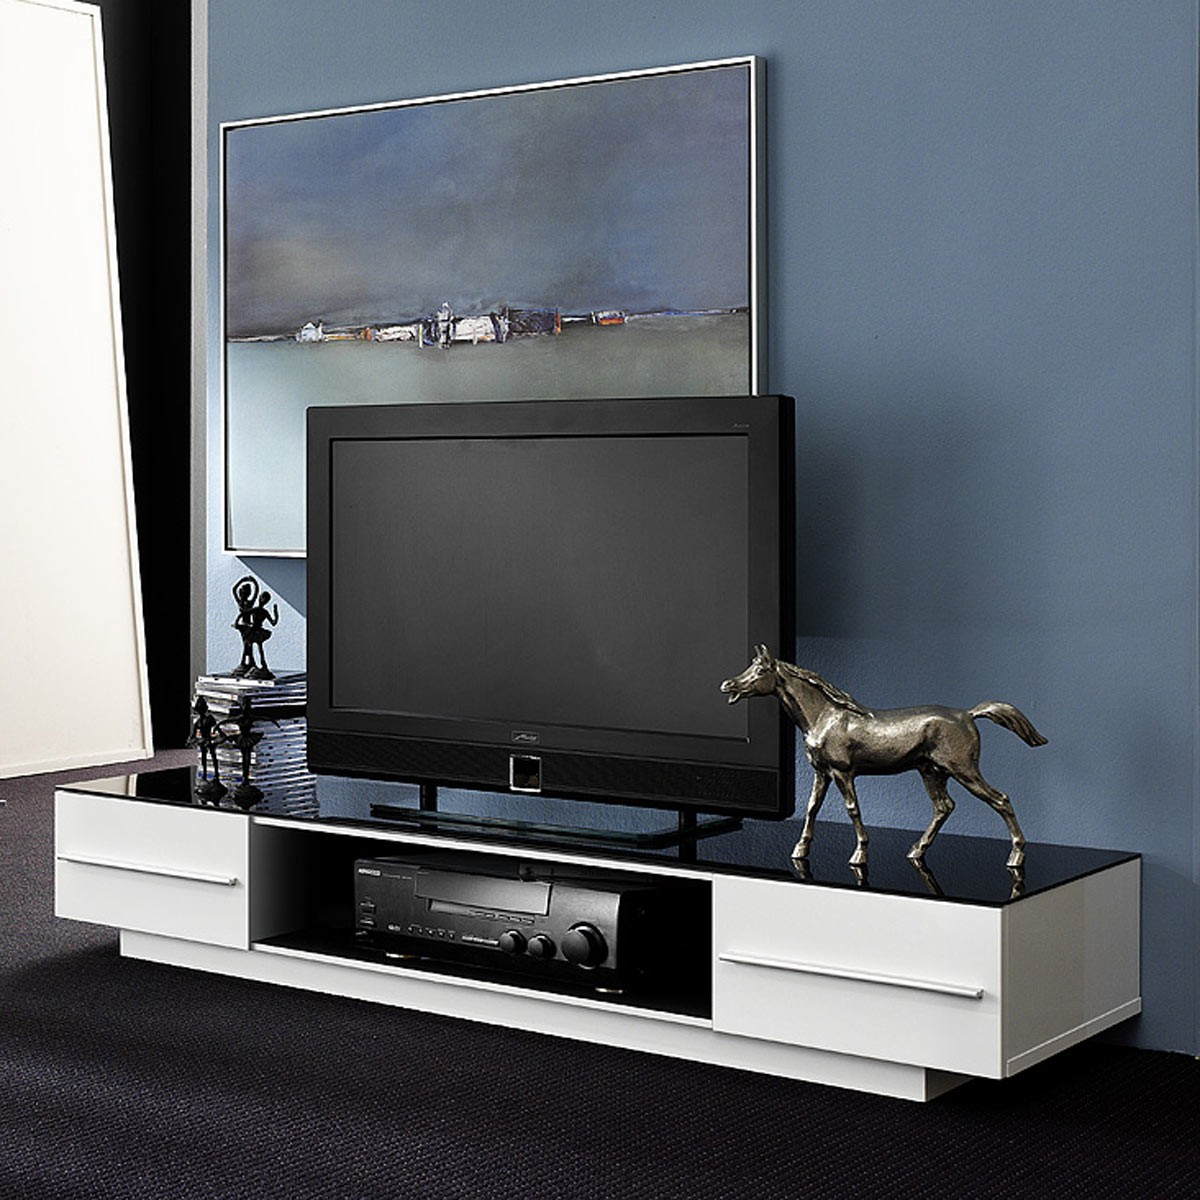 lowboard tv lowboard tv unterteil tv schrank in hochglanz wei schwarzglas ebay. Black Bedroom Furniture Sets. Home Design Ideas